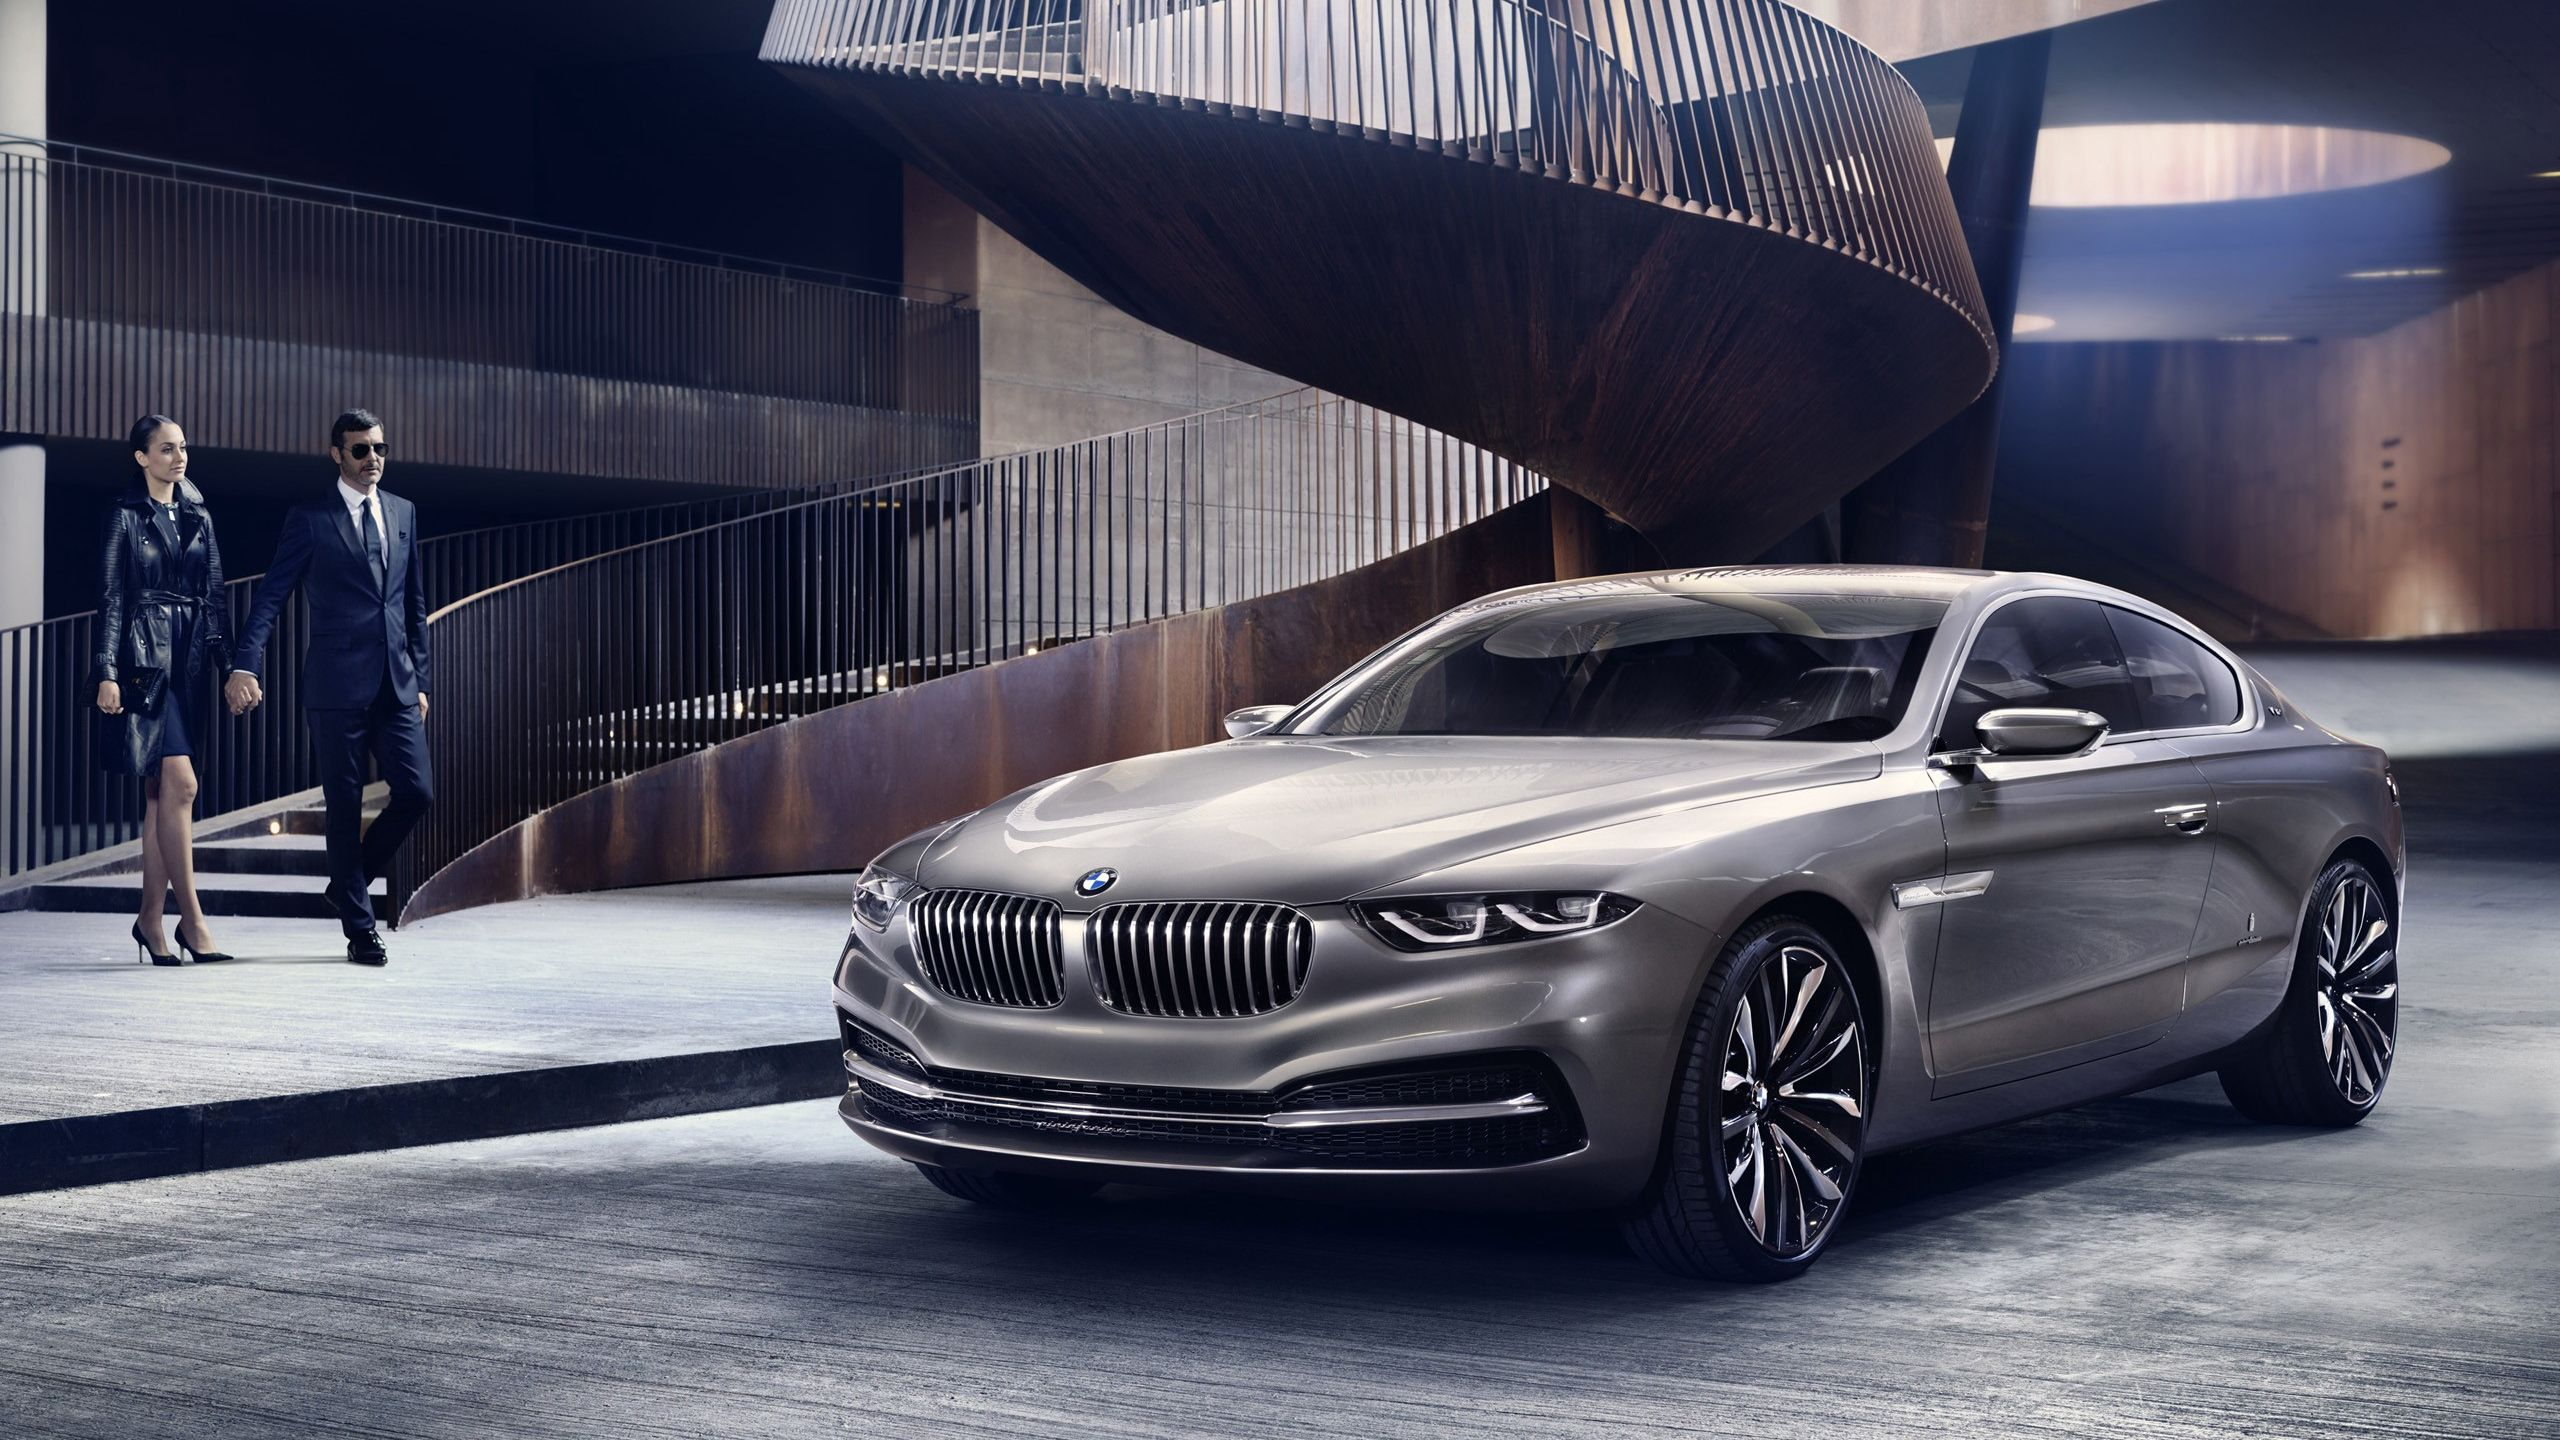 Bmw 9 Series Wallpapers Top Free Bmw 9 Series Backgrounds Wallpaperaccess